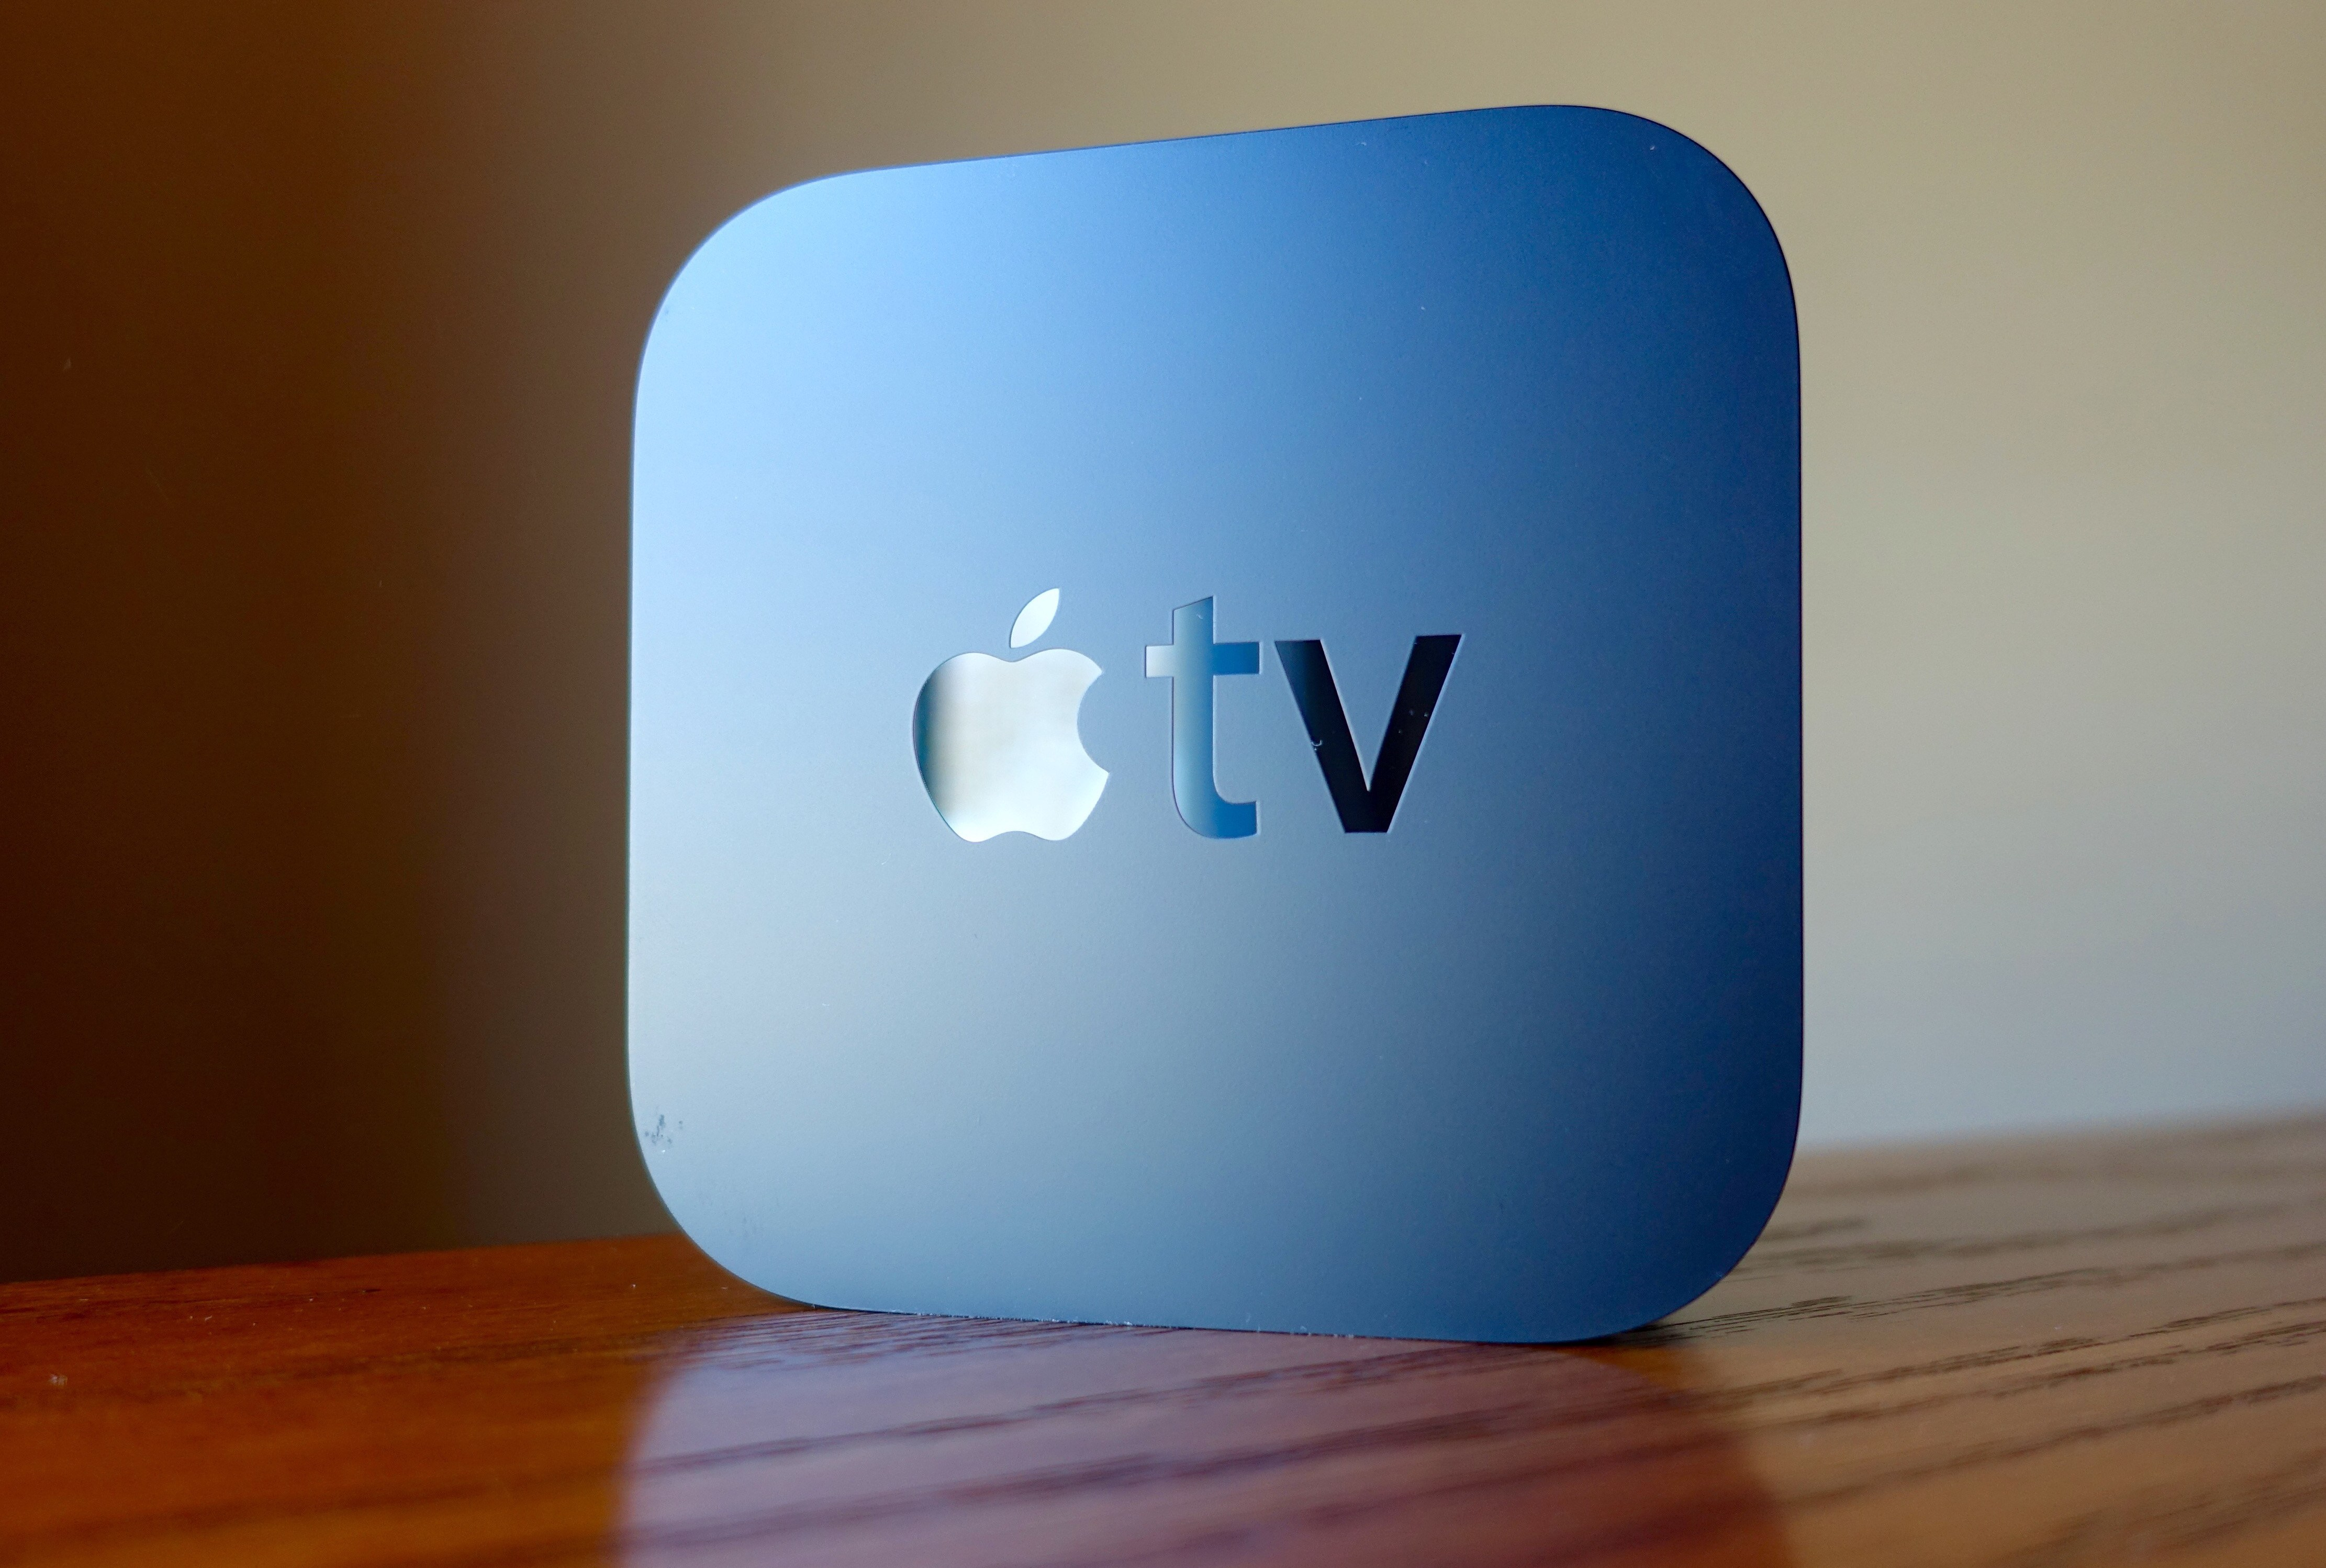 Should You Buy the 32GB or 64GB Apple TV 4K?